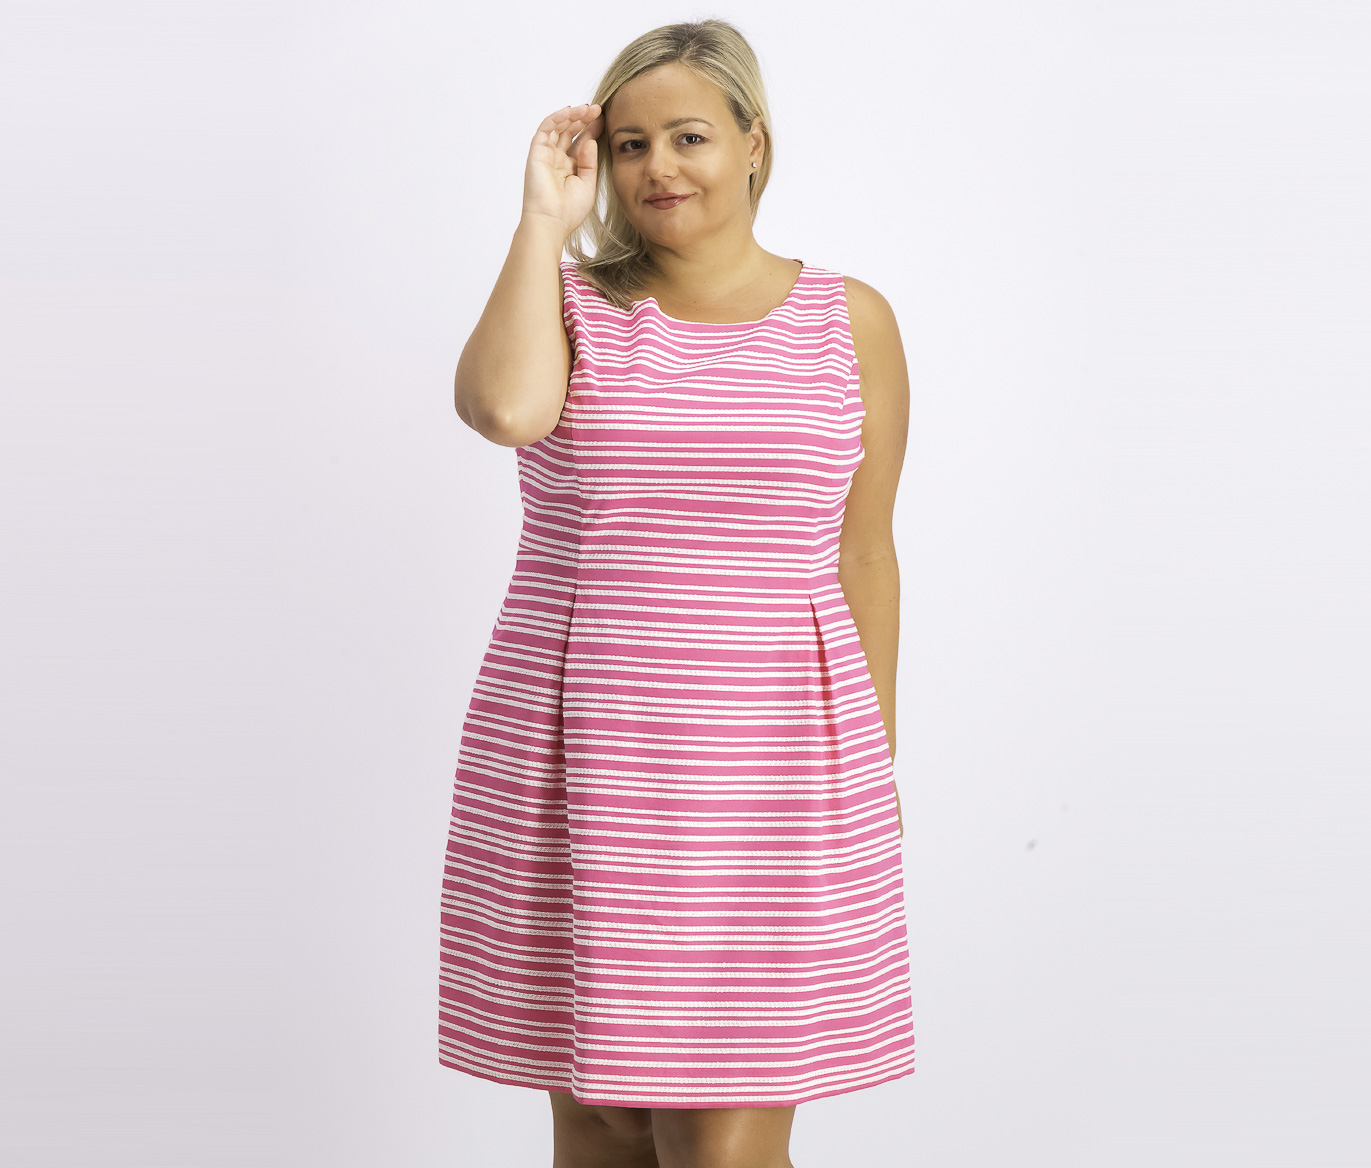 Women's Sleeveless Infinity-Stripe Dress, Pink/White